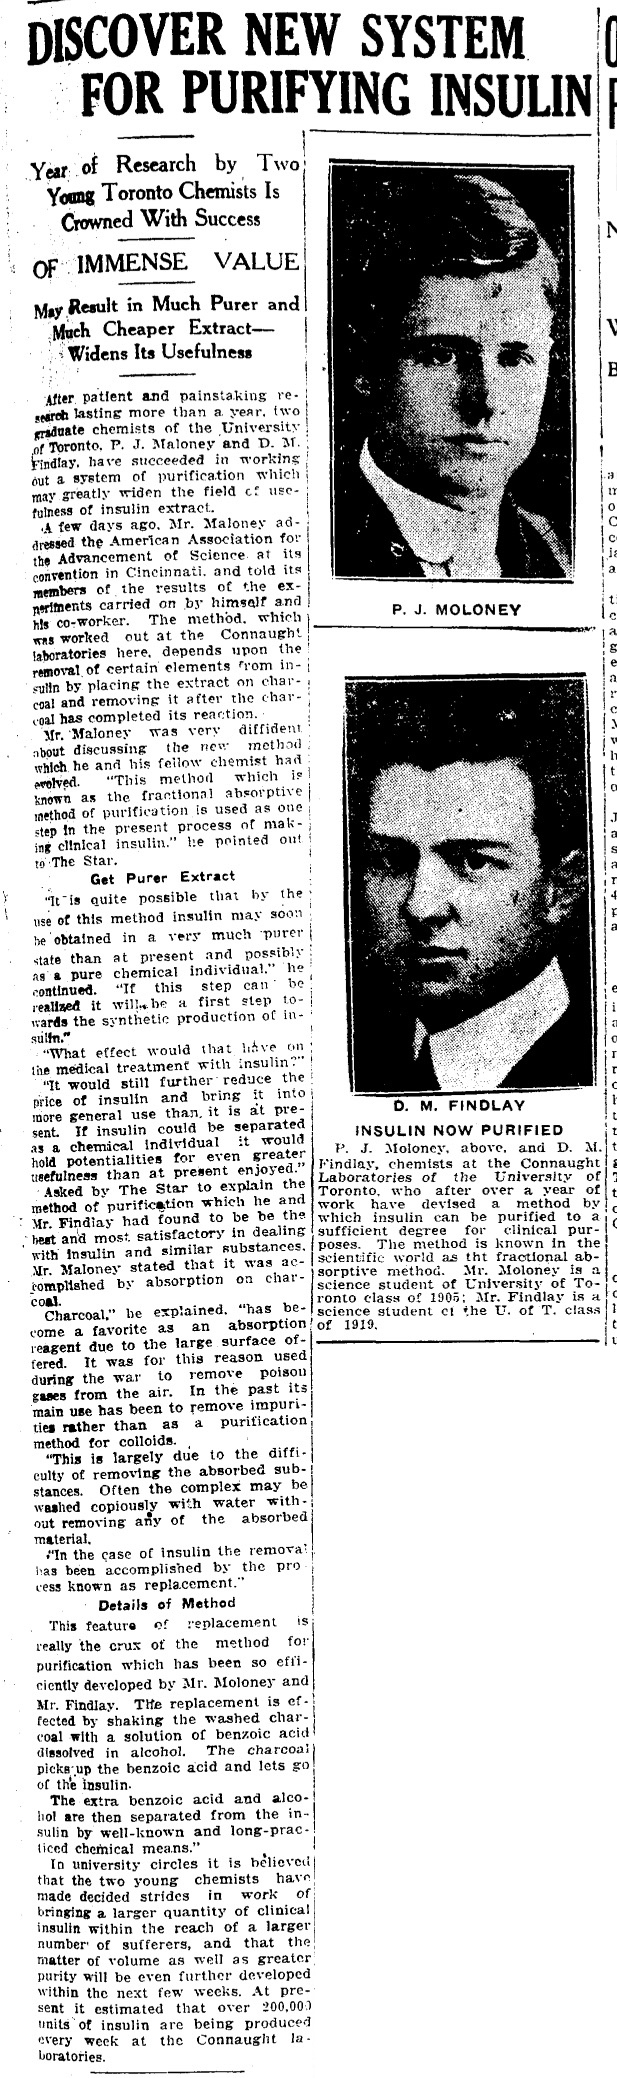 Toronto Star clipping from January 5, 1924, telling the story of Dr. Peter Moloney's new insulin purification method that he developed with D.M. Finlay.